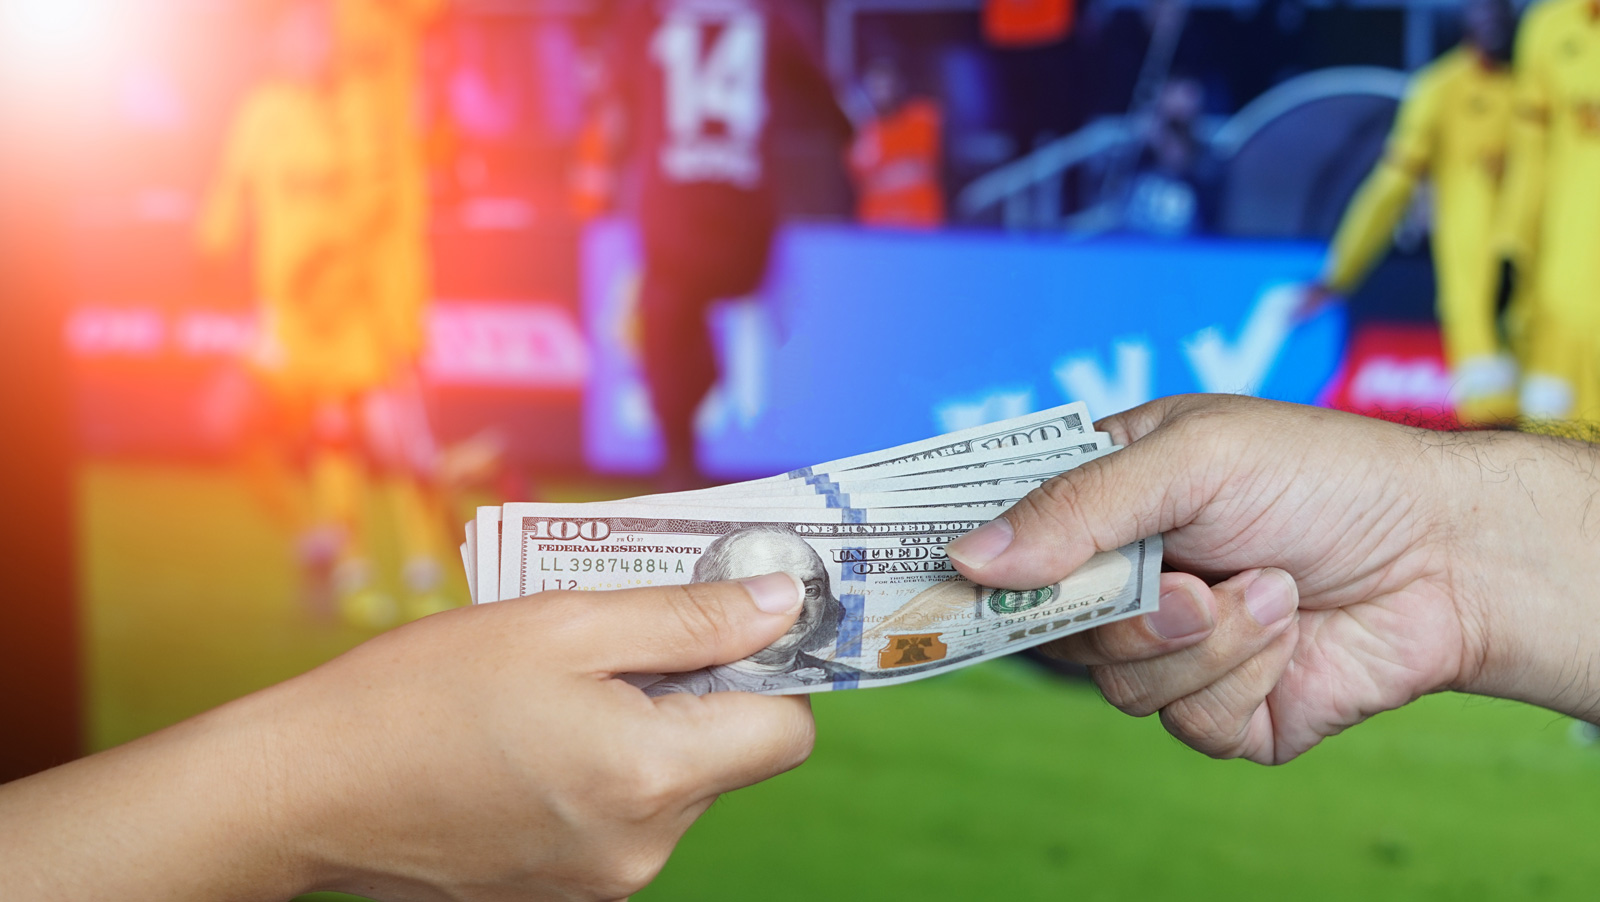 Taiwan sports betting sees spike thanks to 2018 World Cup wagers